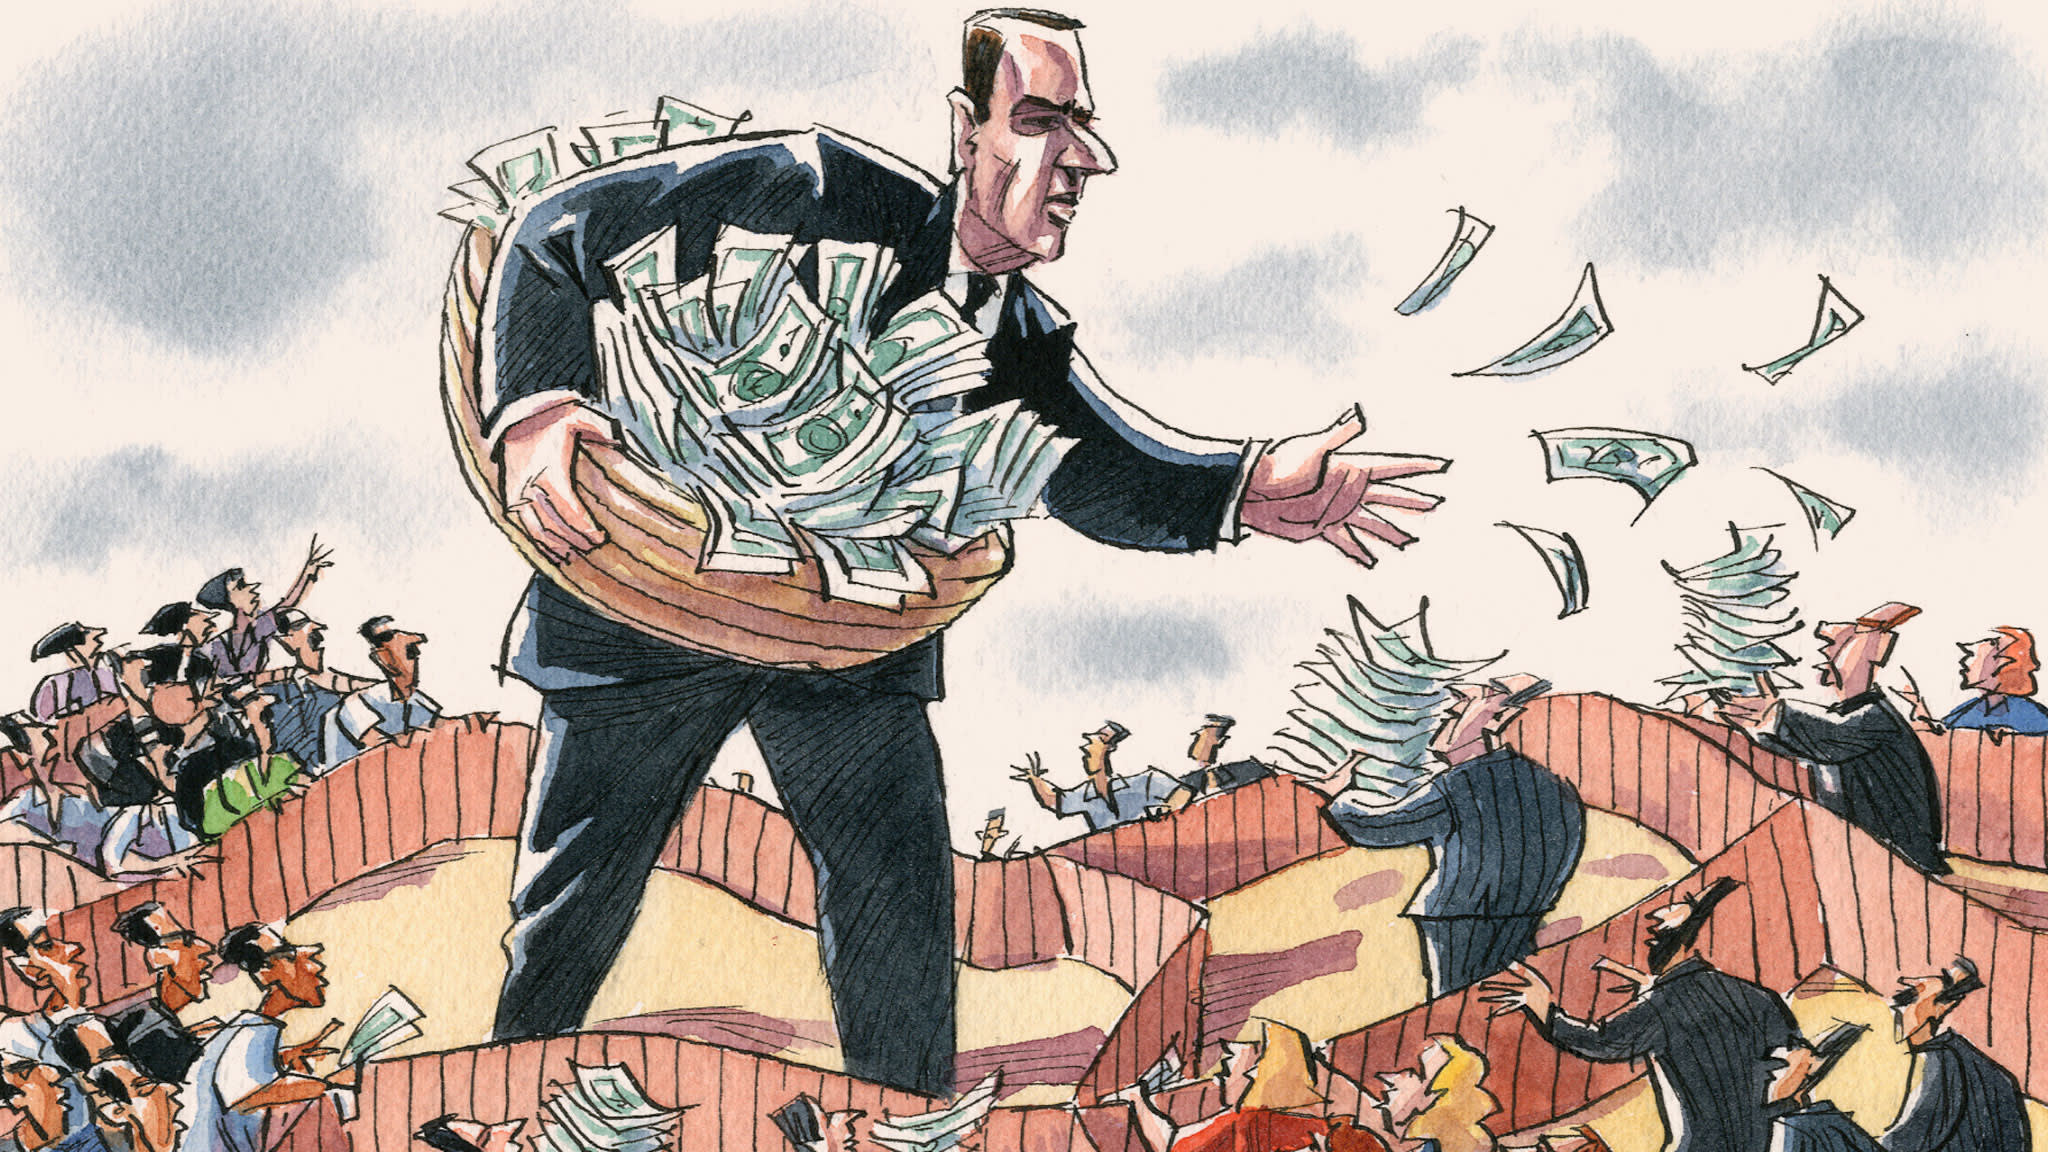 The economic inequality debate avoids asking who is harmed | Financial Times